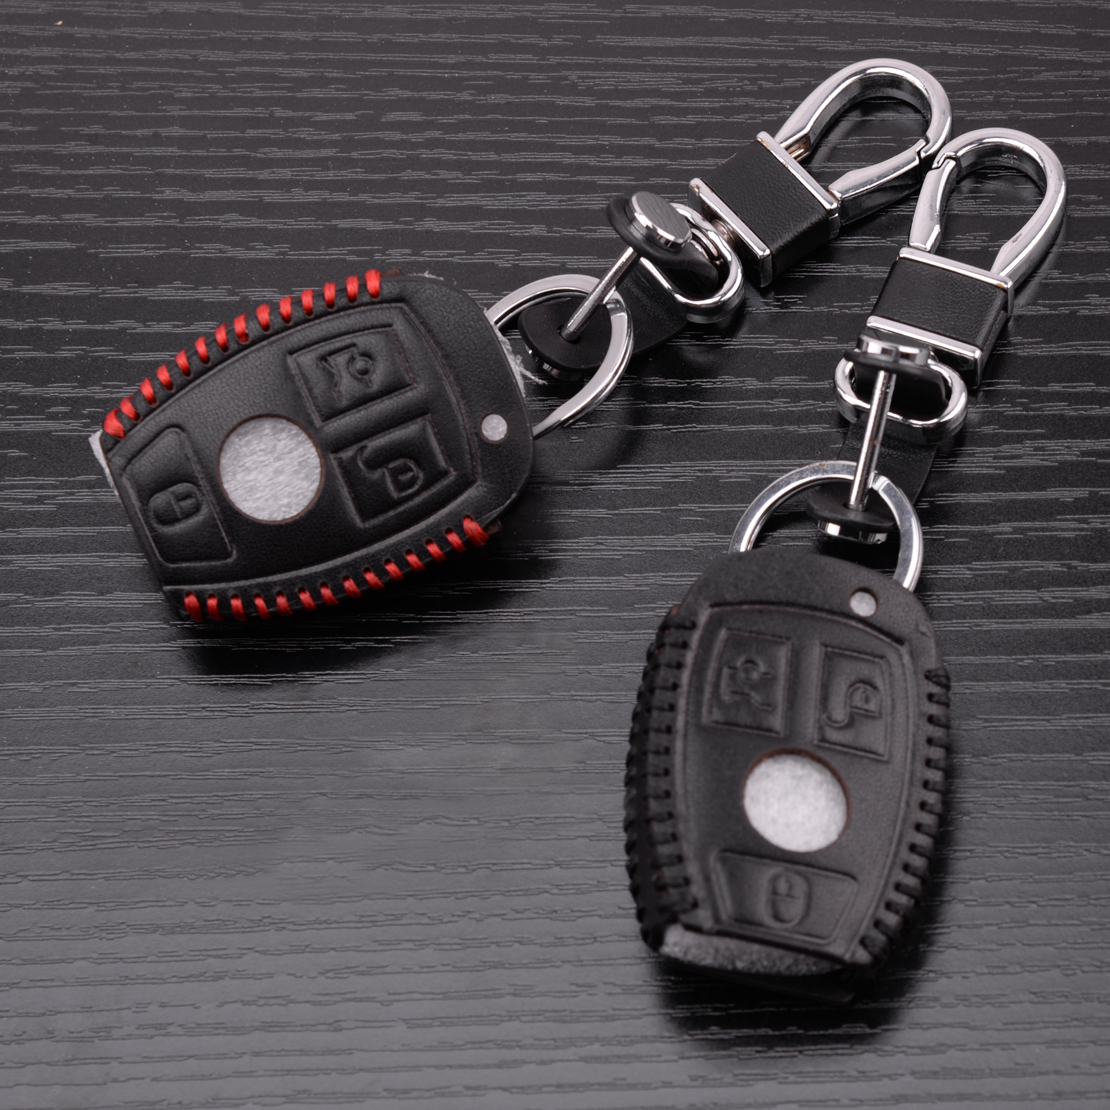 CITALL PU Leather 3 Buttons Remote Smart Key Cover Case Holder Fit For Mercedes Benz 3 4 Buttons C E S G